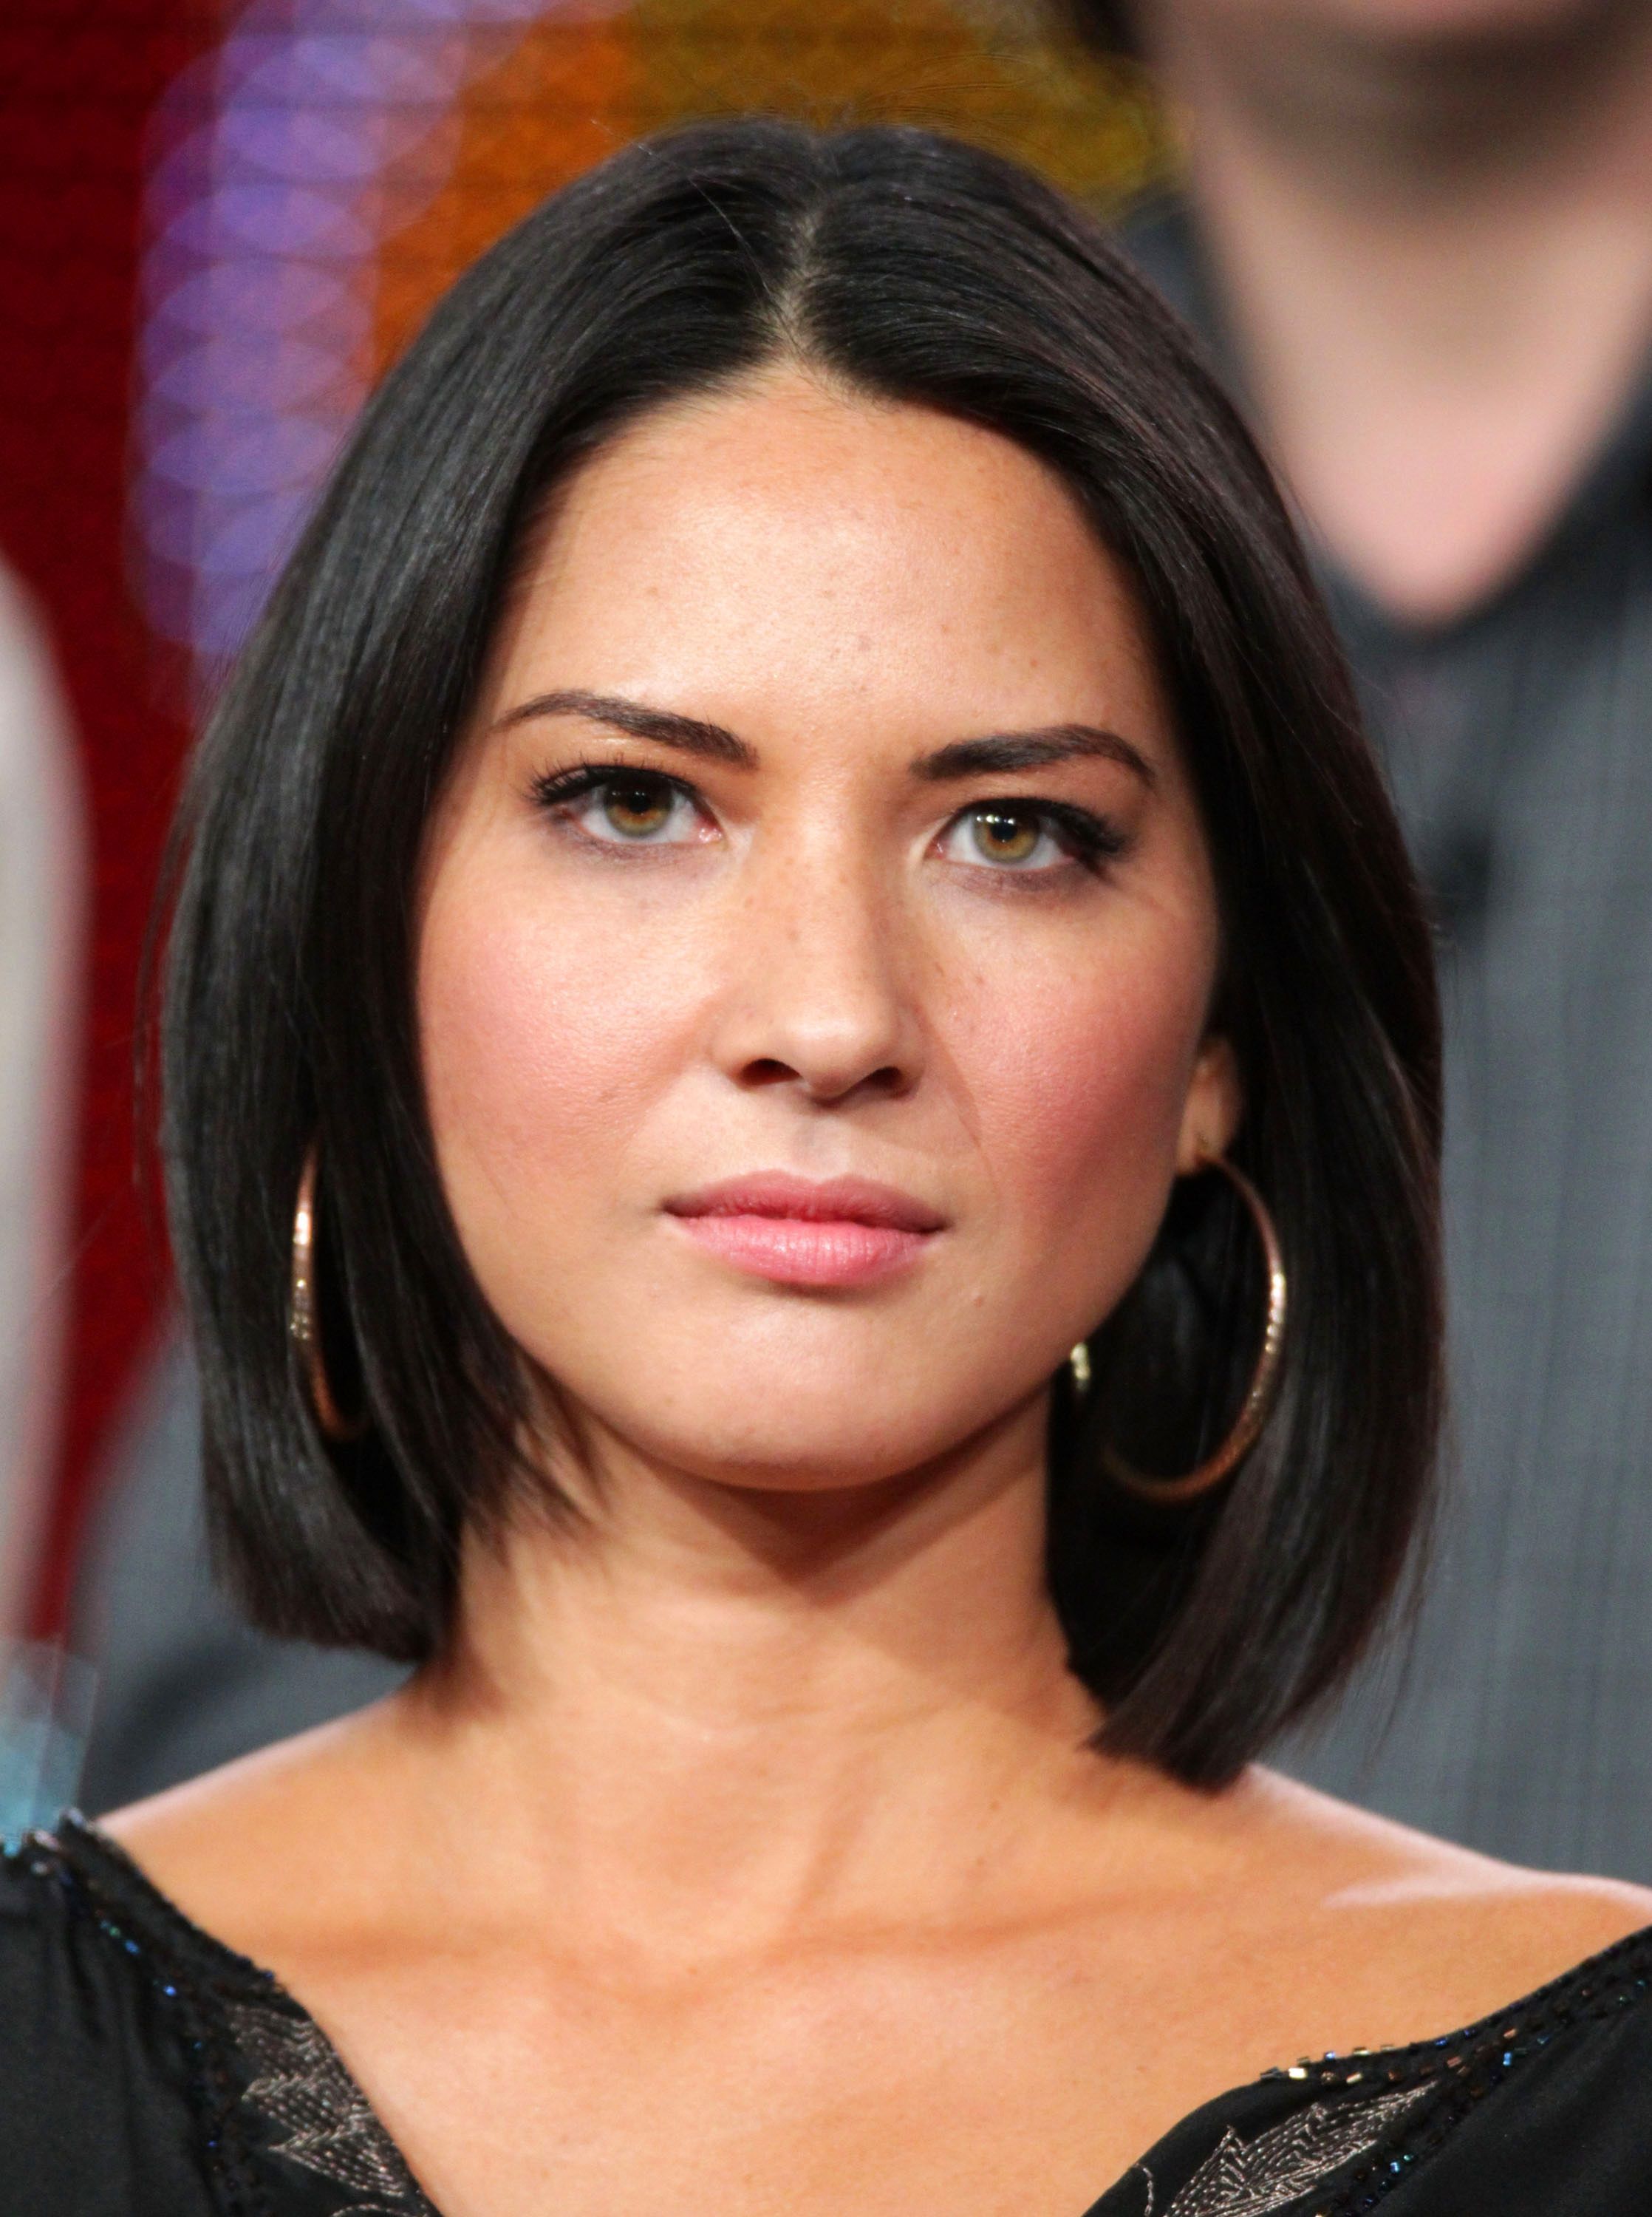 Olivia Munn Sexy   The Fappening. 2014-2020 celebrity